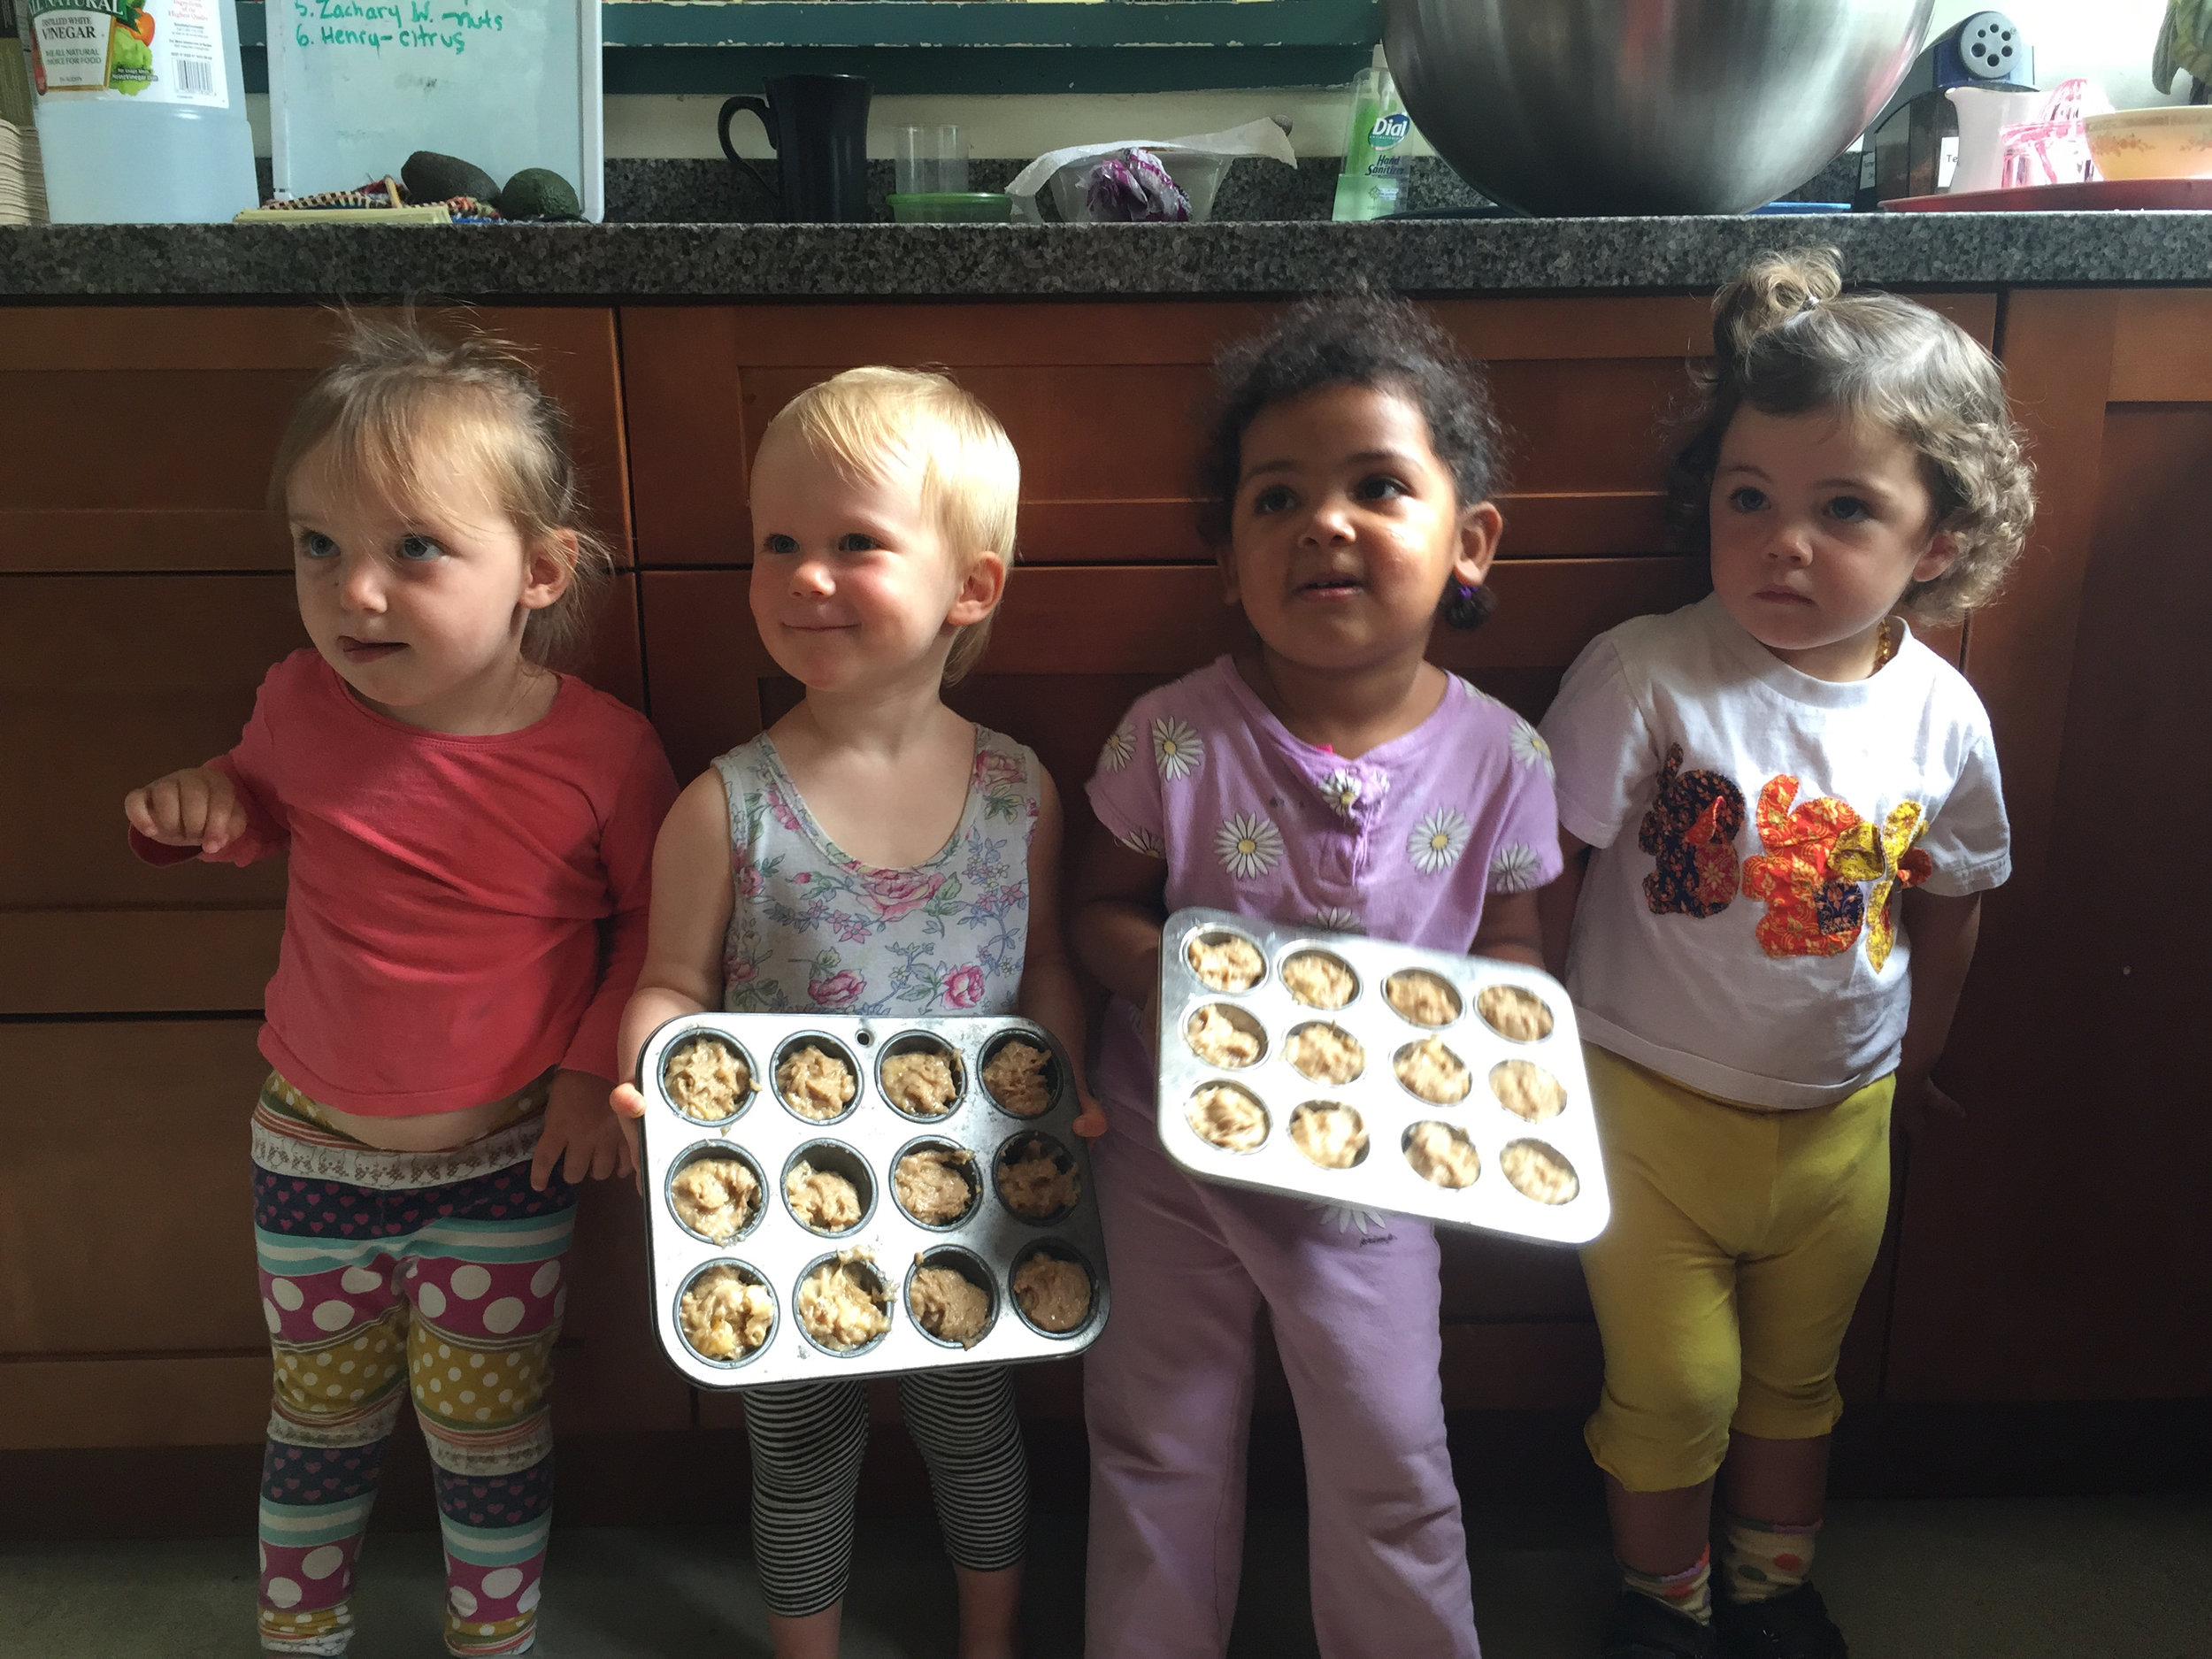 toddler bakers1 copy.jpeg